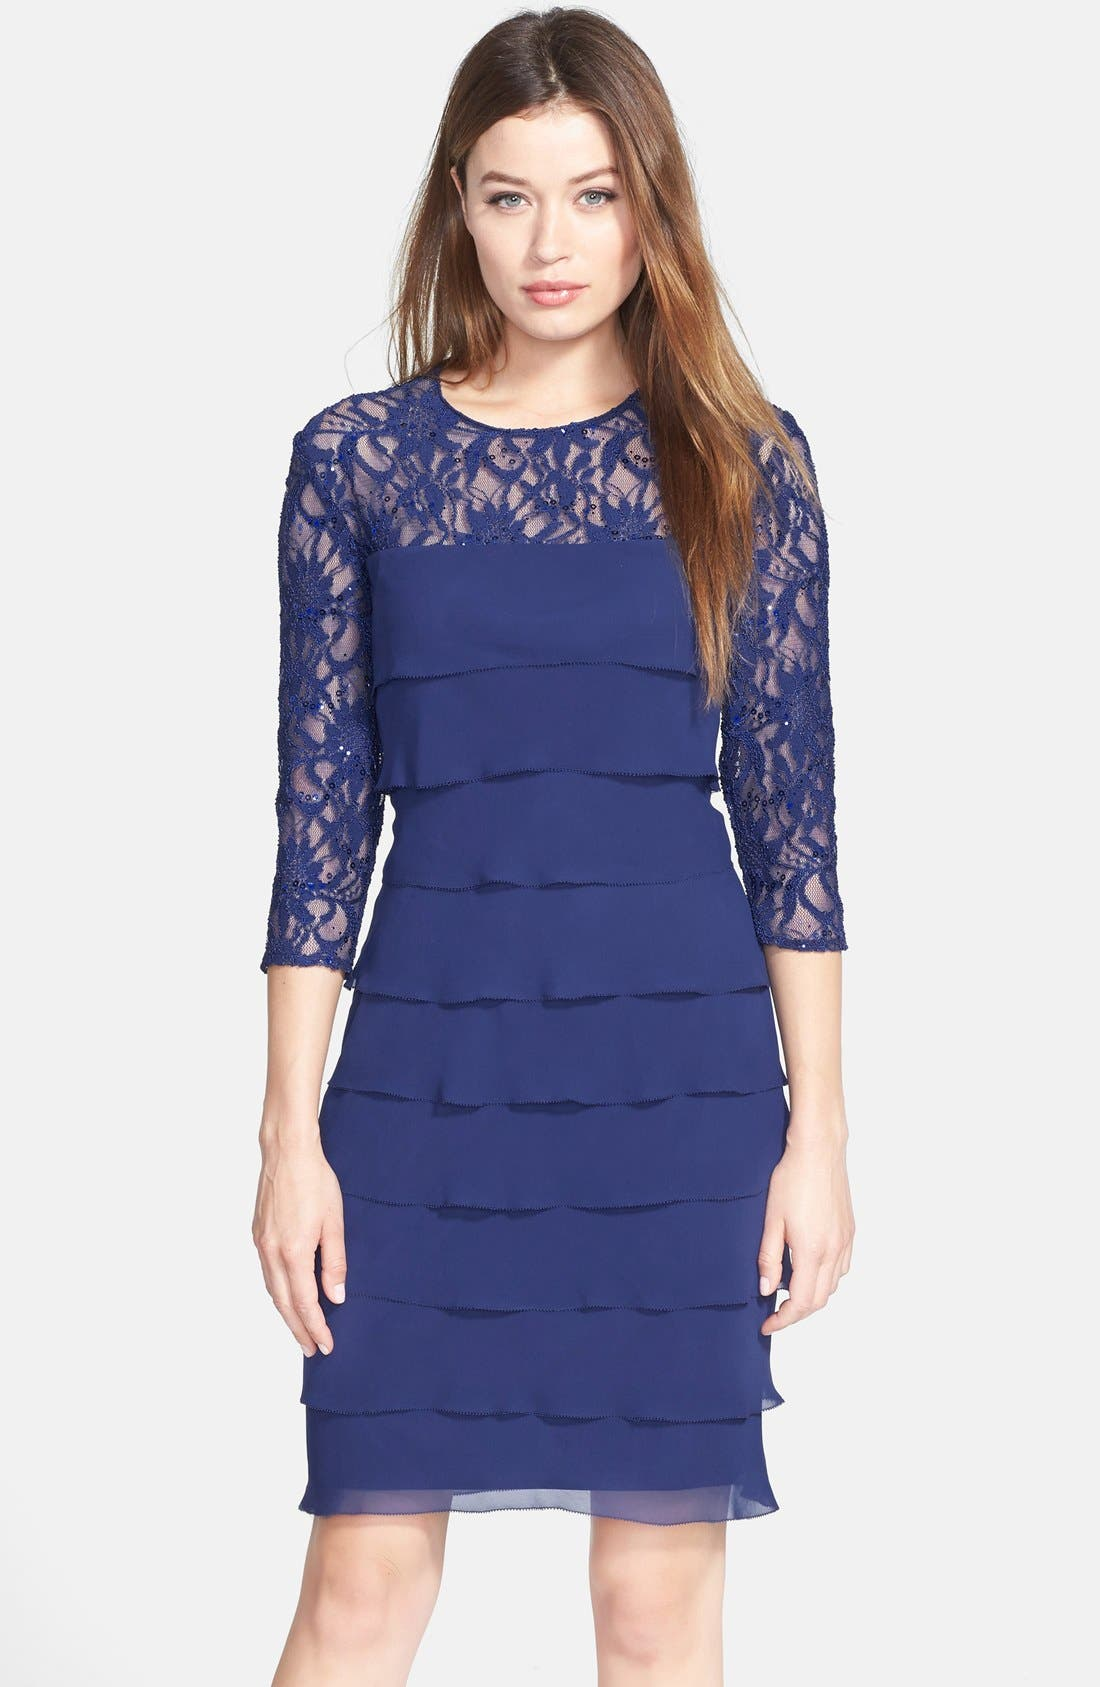 Alternate Image 1 Selected - Alex Evenings Tiered Chiffon & Lace Sheath Dress (Regular & Petite)